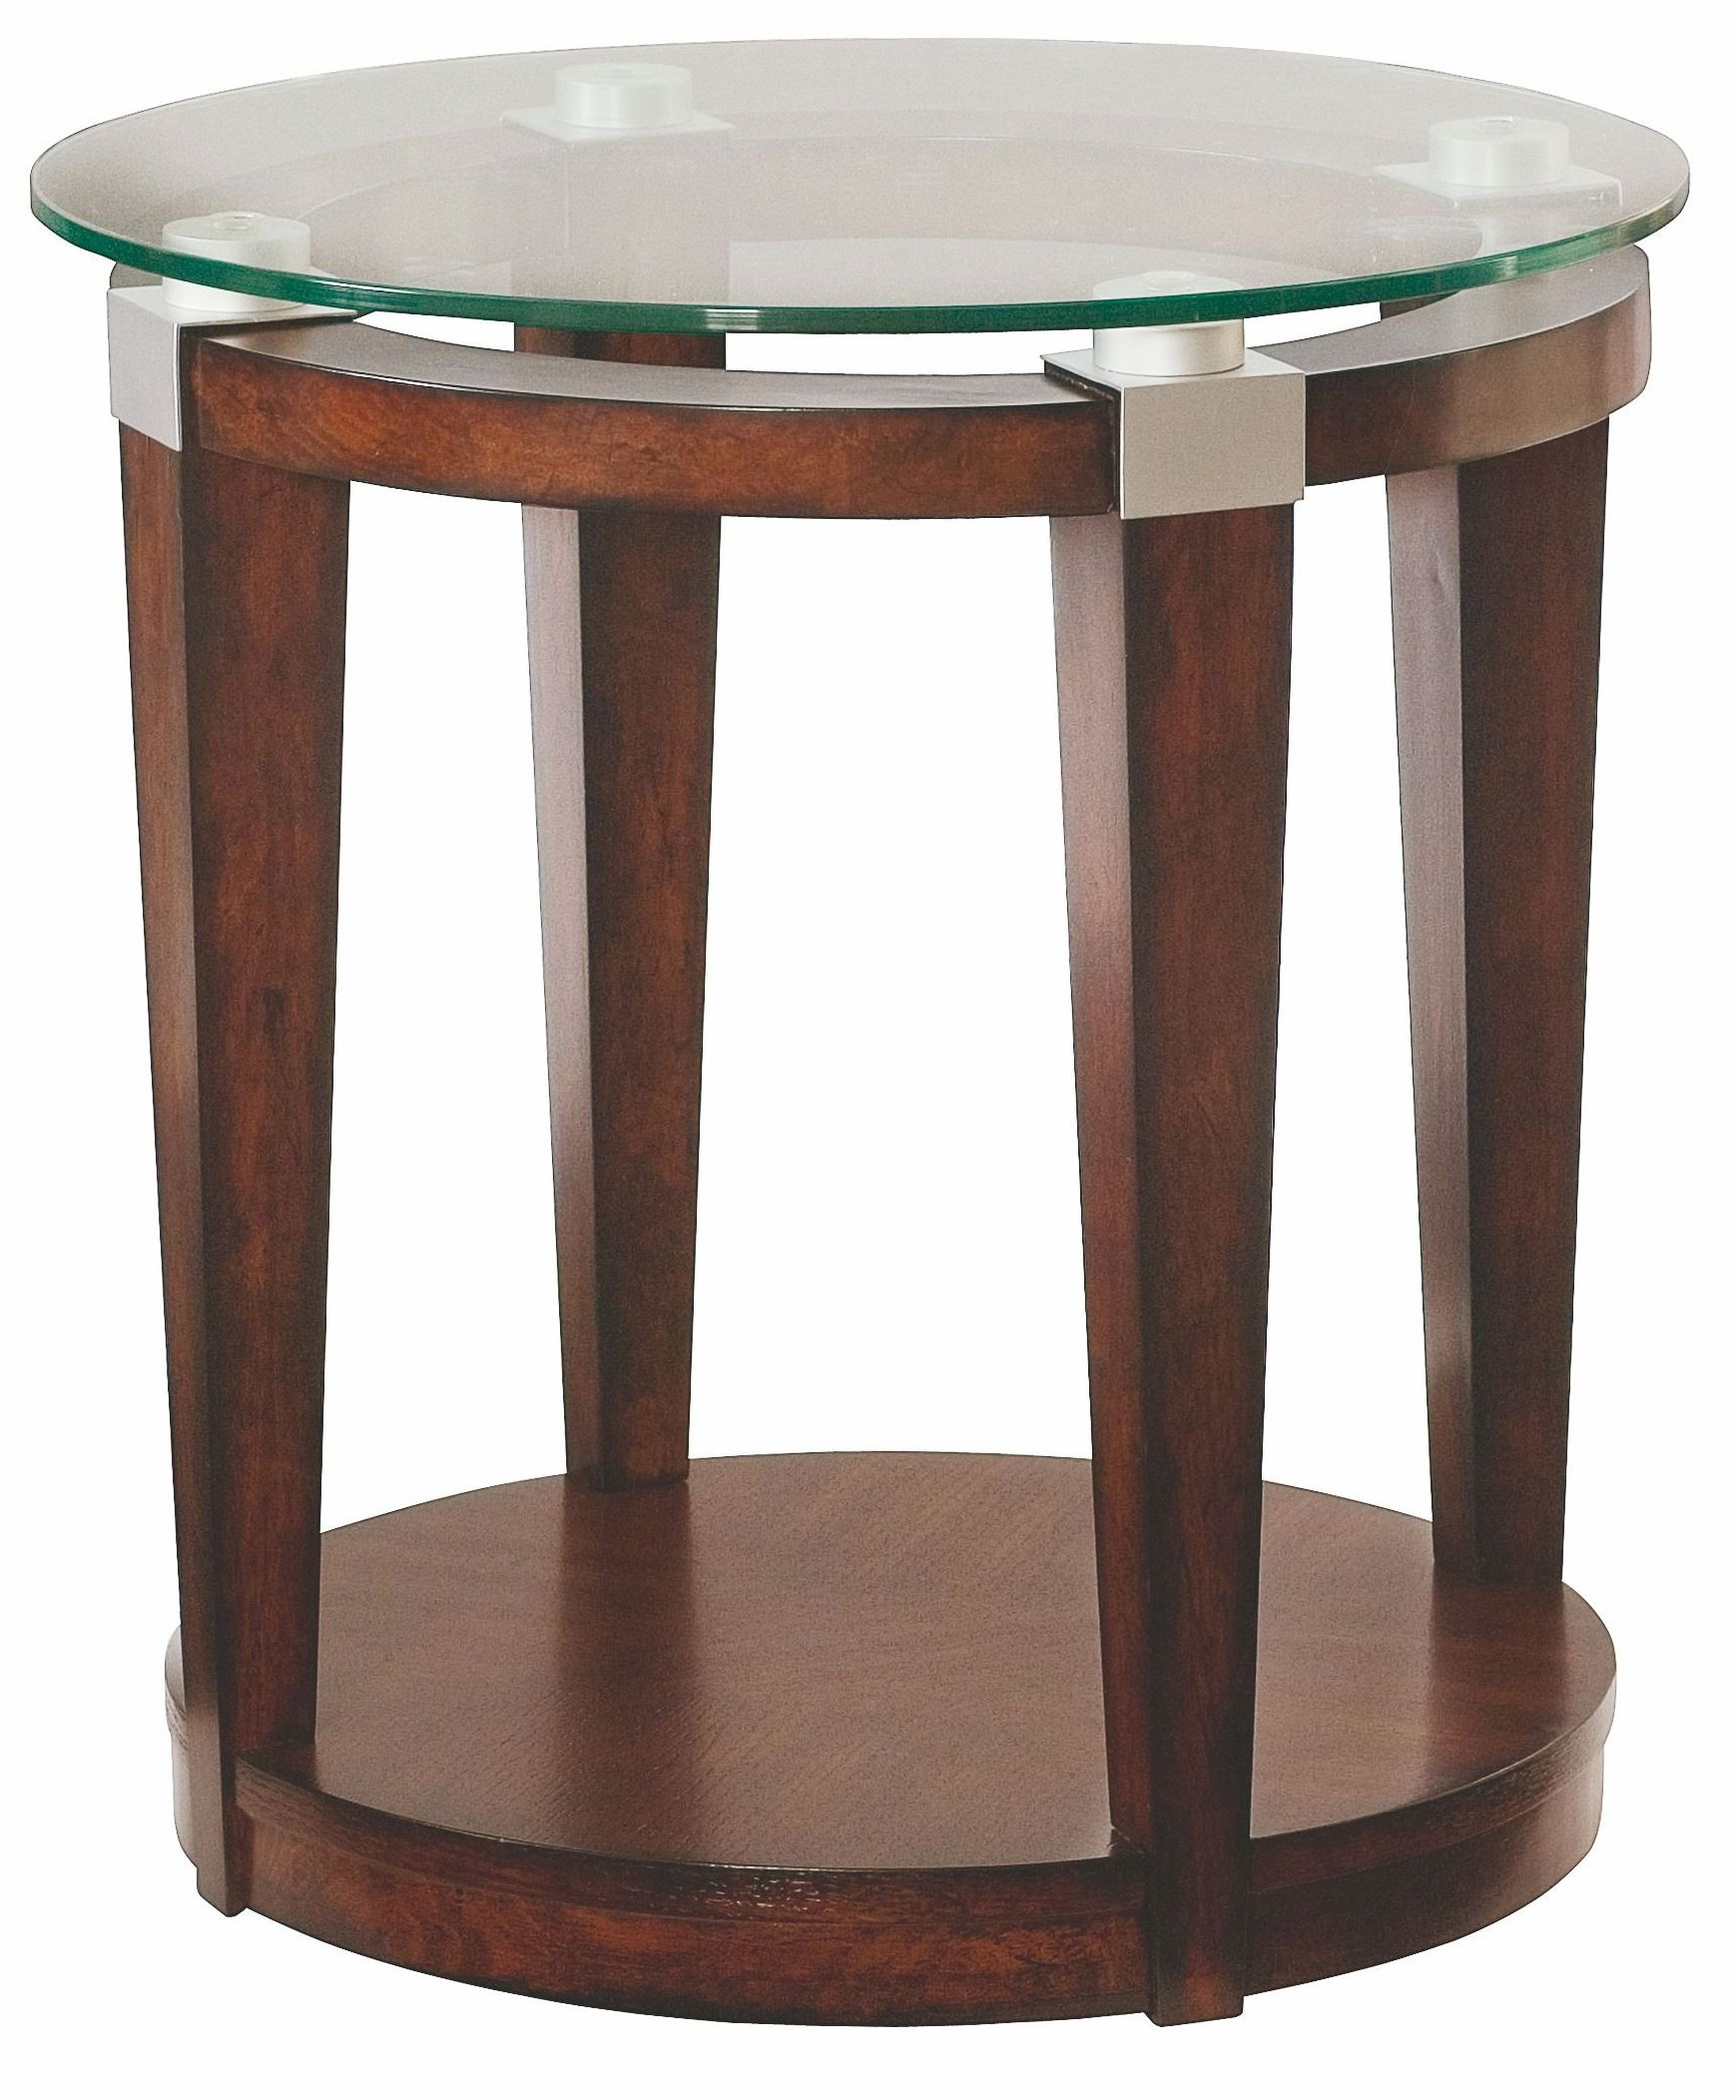 hammary solitaire dark brown round accent table silo iron and chairs sectional with ott nesting tables very narrow console foldable trestle electric wall clock wicker outdoor